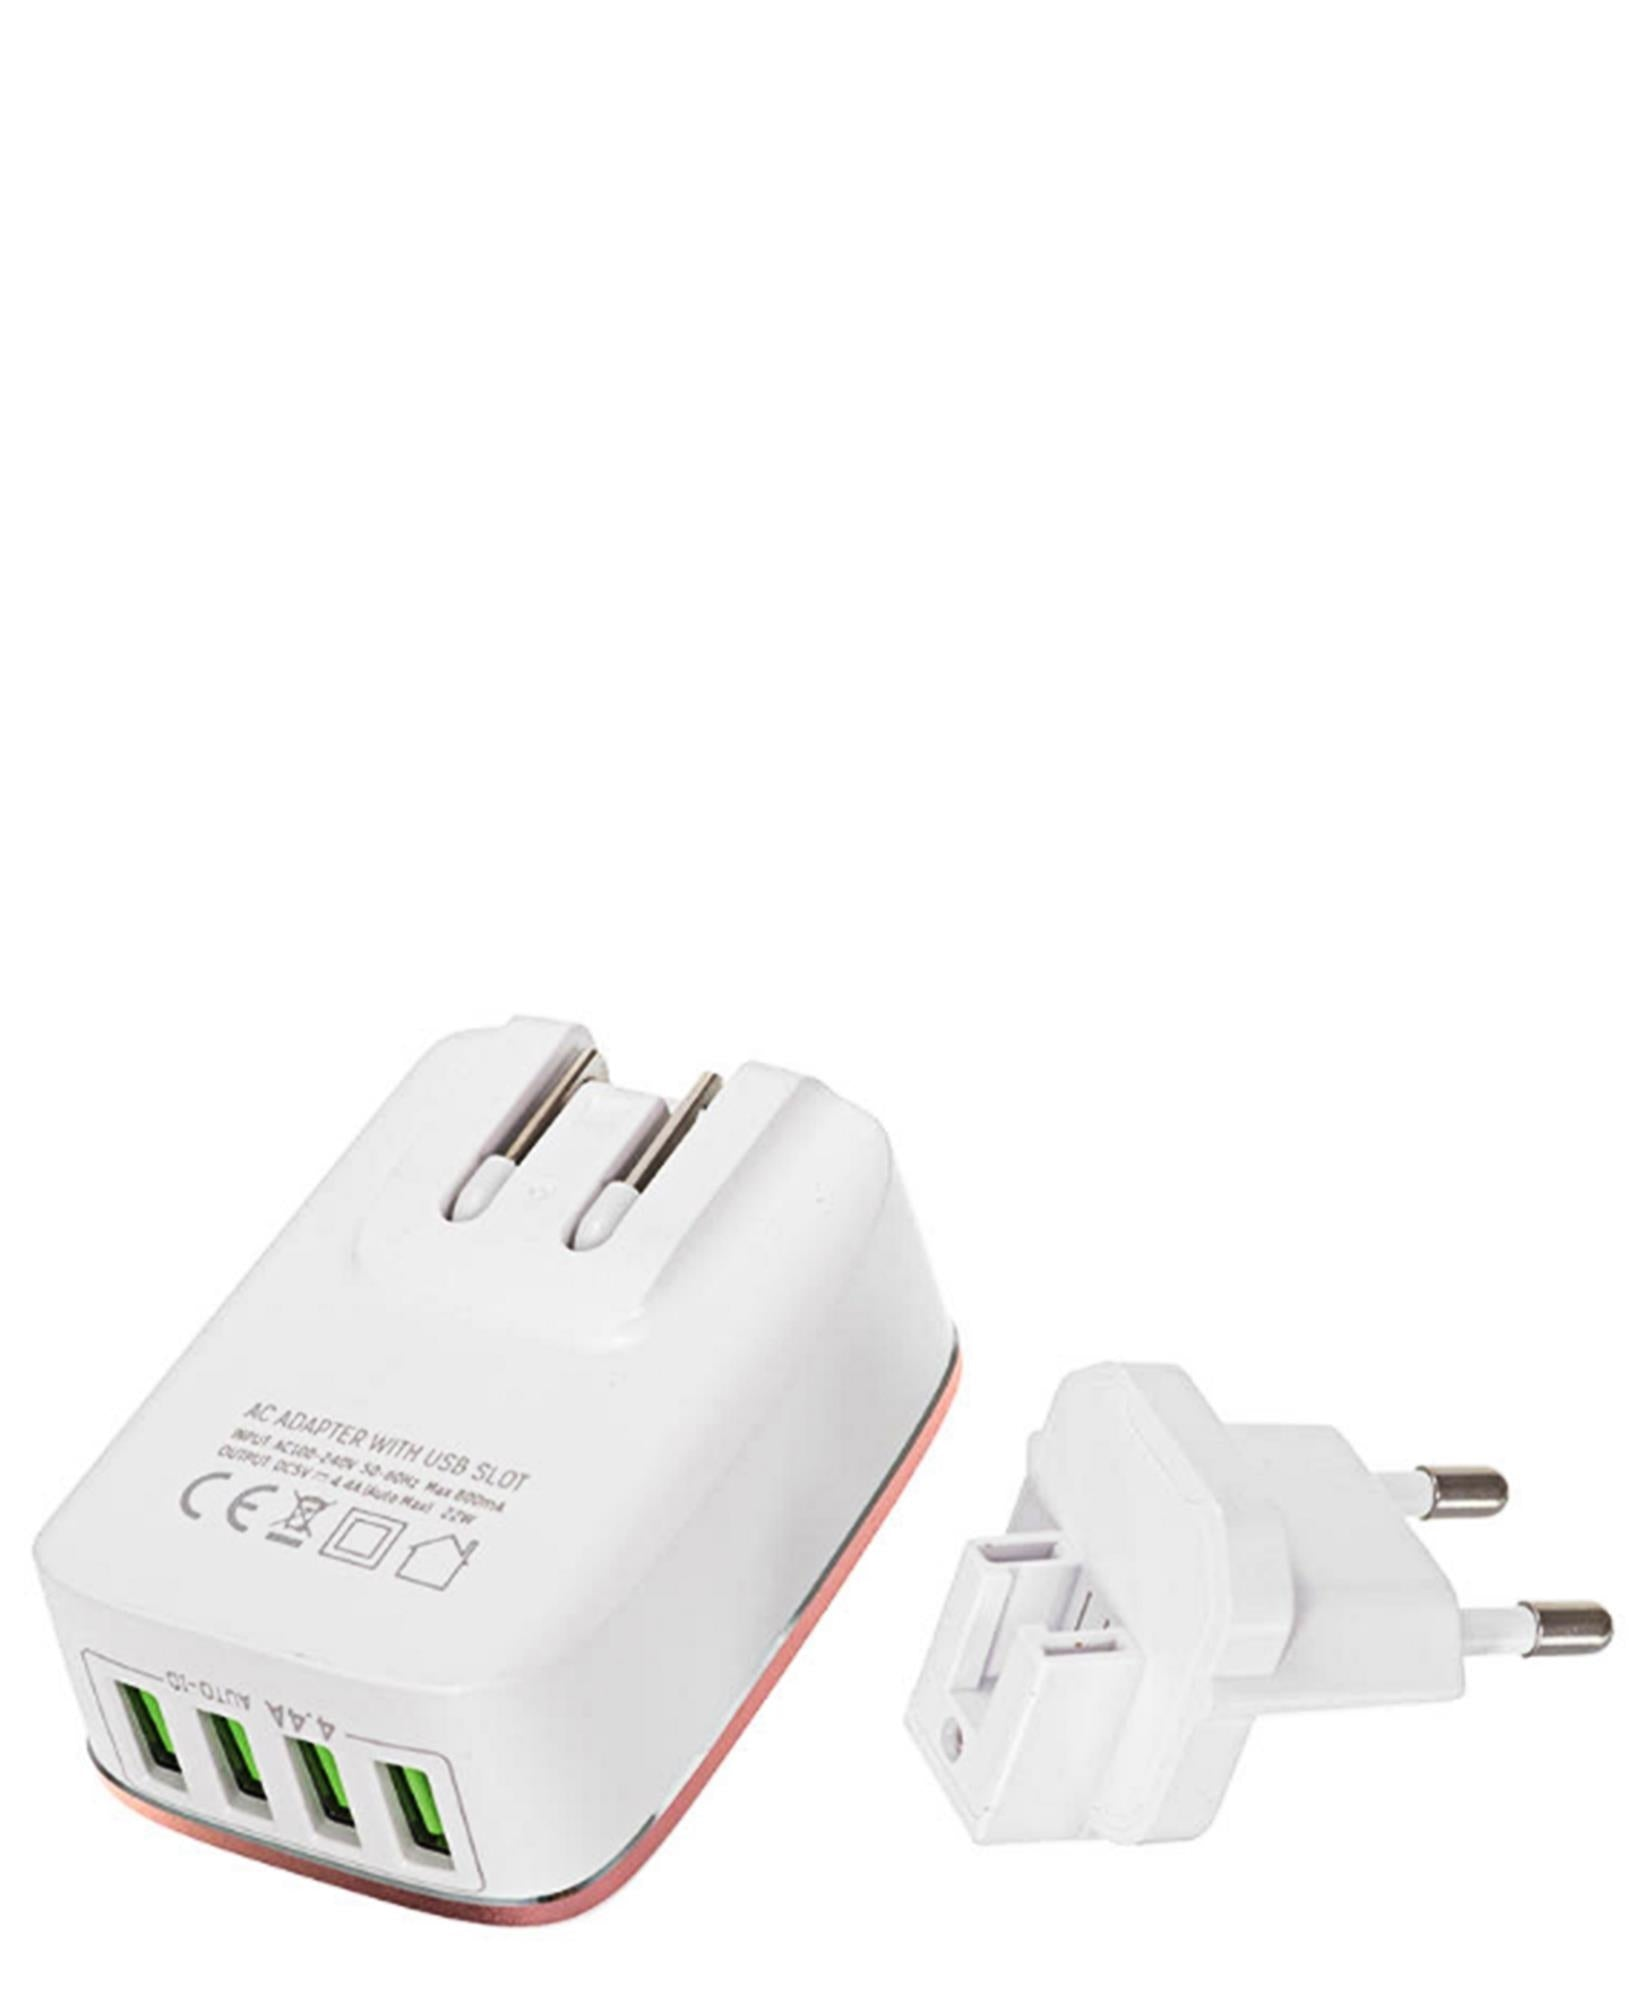 4 Port USB Power Adapter - White